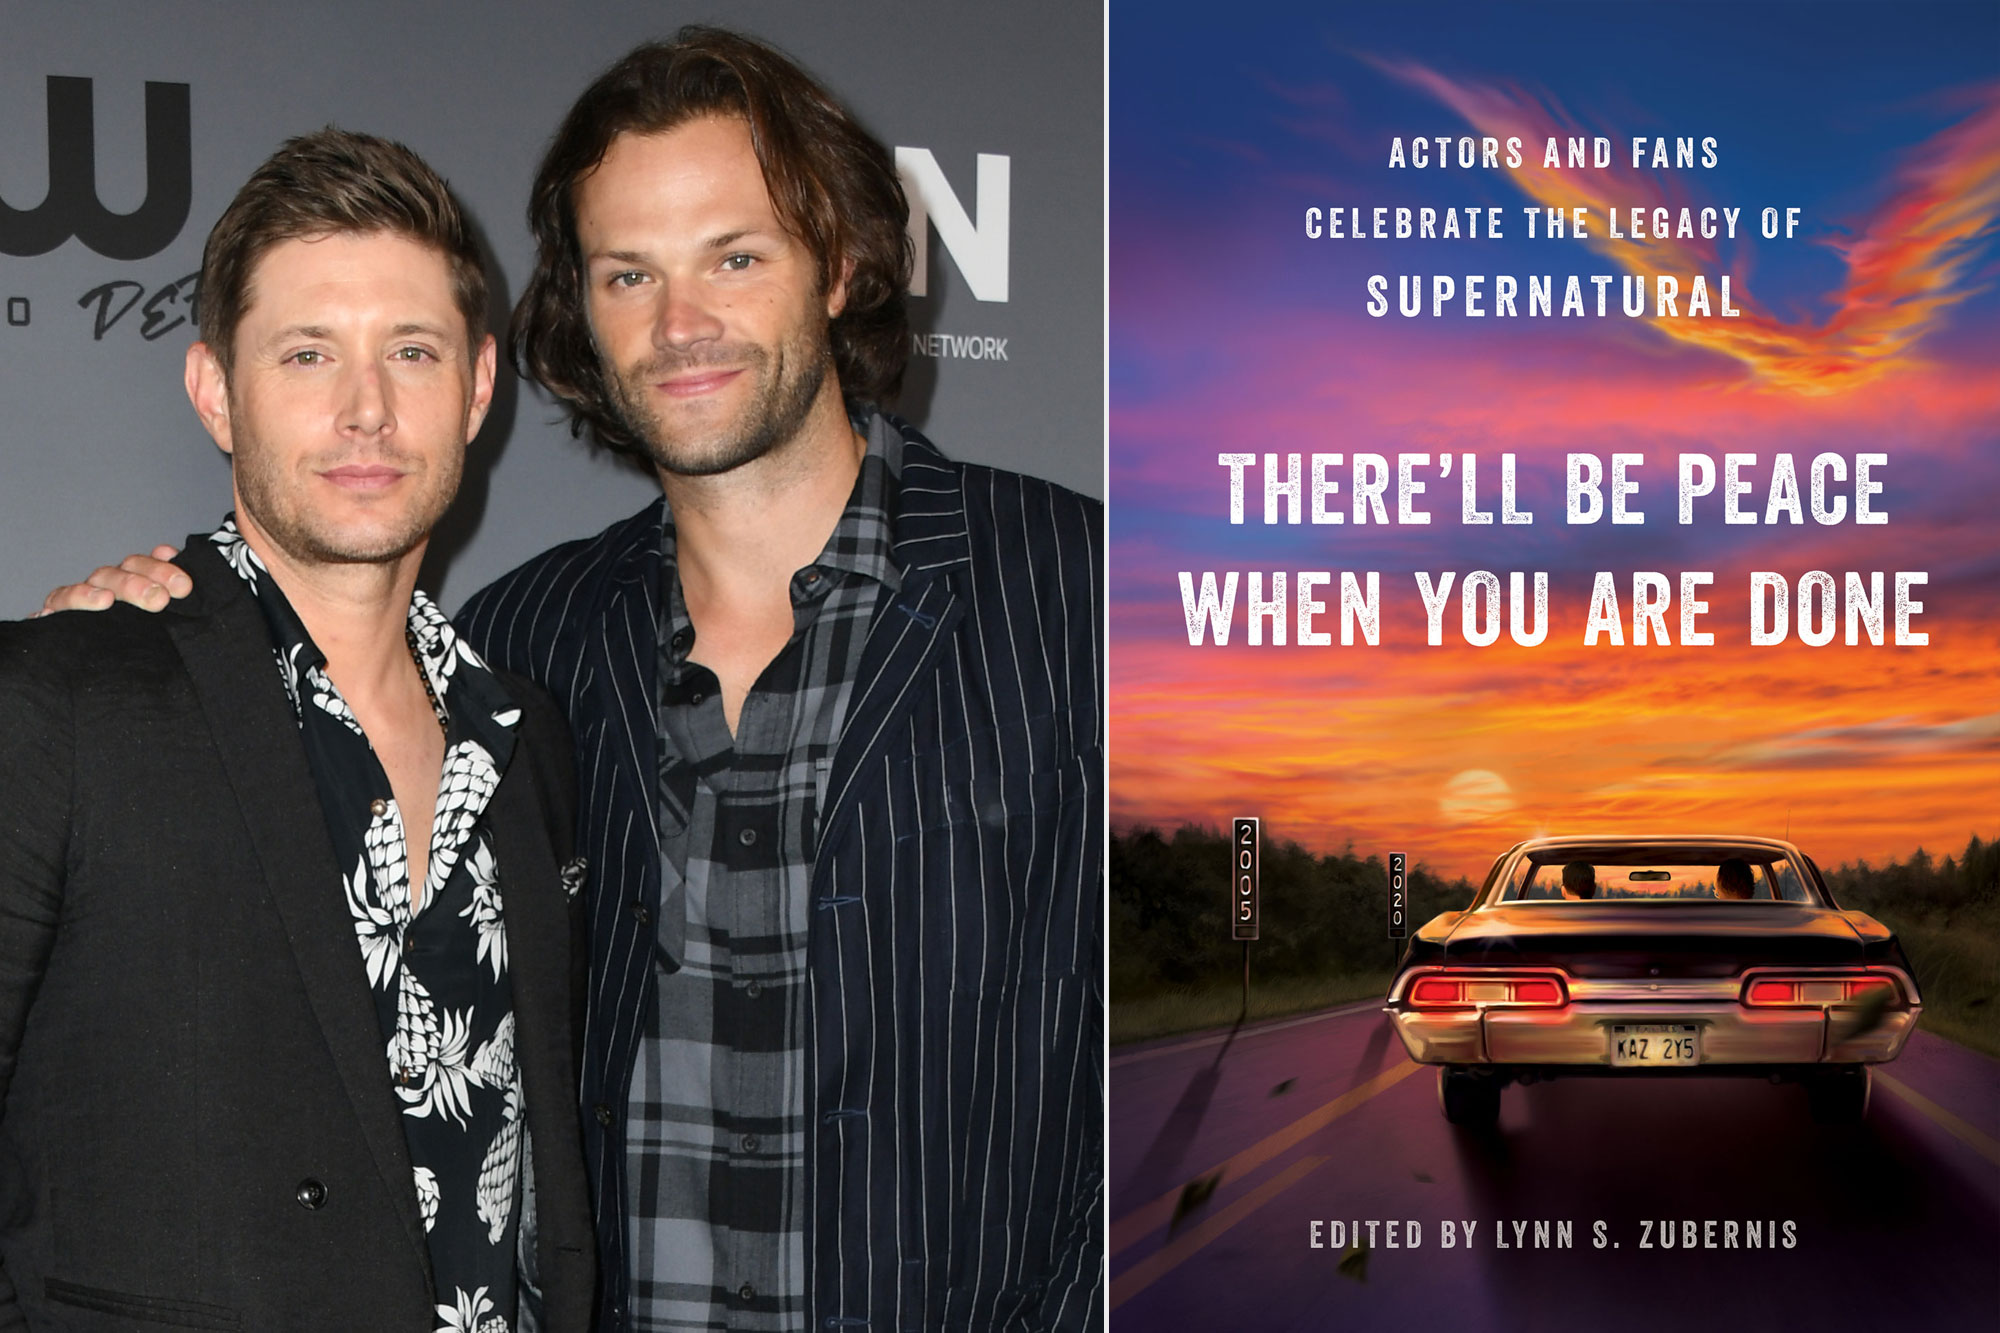 Jensen Ackles and Jared Padalecki; There'll Be Peace When You Are Done: Actors and Fans Celebrate the Legacy of Supernatural